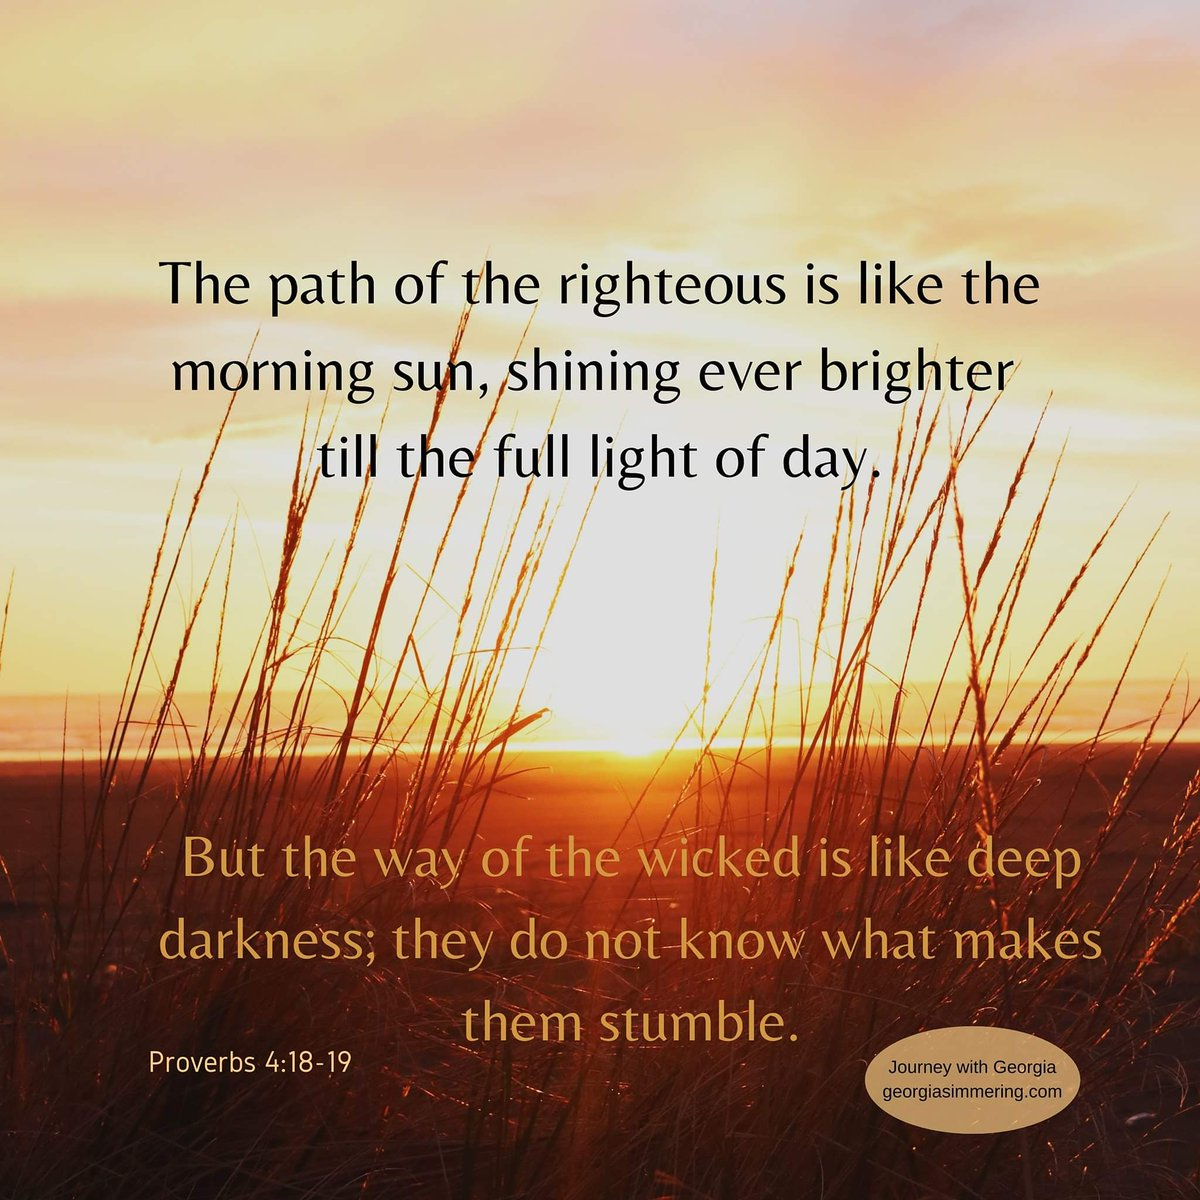 Proverbs  #journeywithgeorgia #jesusmyanchor #biblemyroadmap #path #righteous #sun #shining #day #wicked #darkness #stumble https://t.co/Bk5XaXRaU9